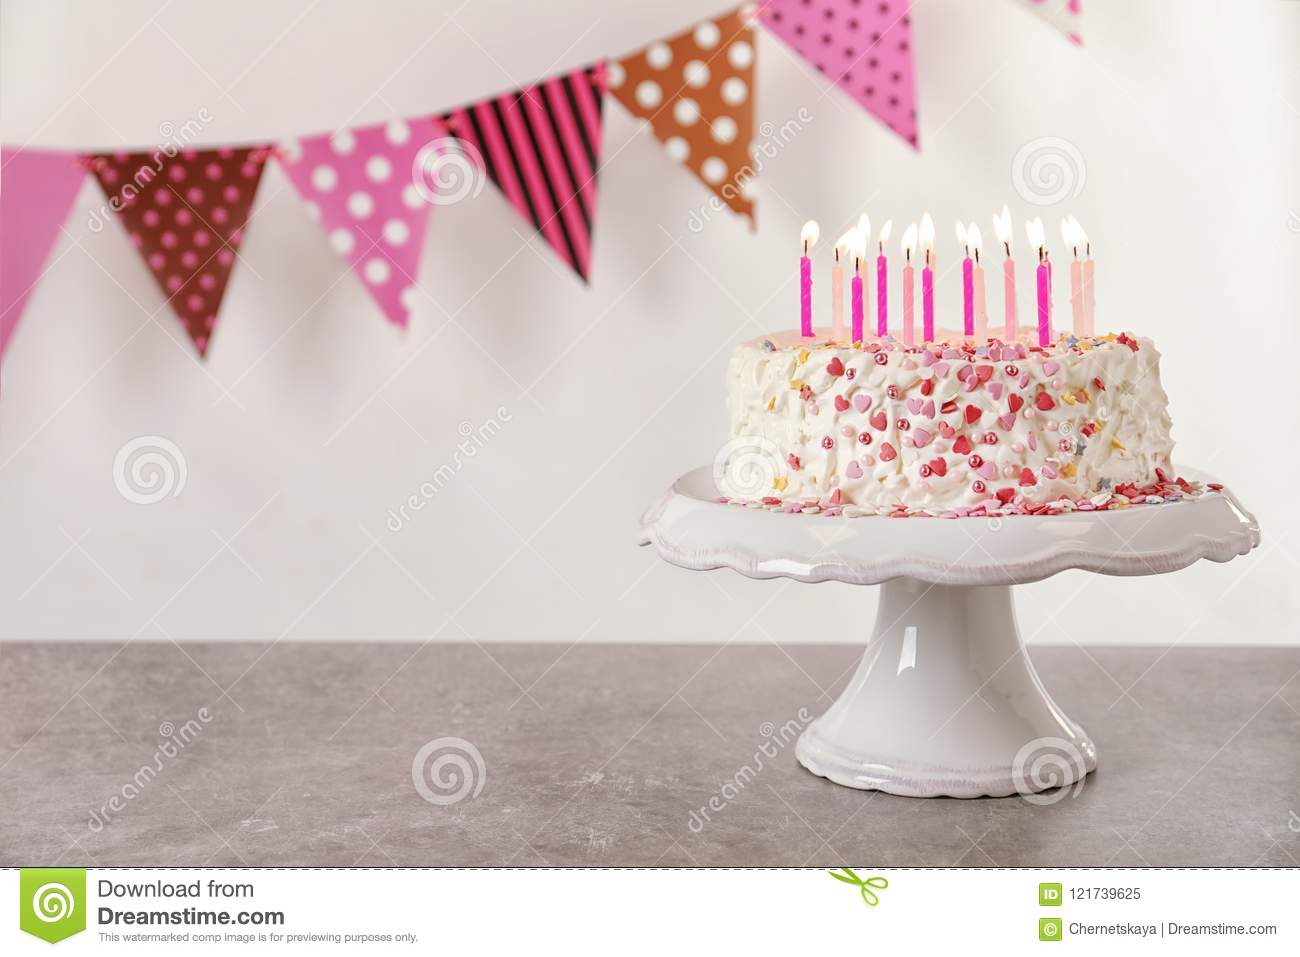 Birthday Cake With Candles On Table Against Stock Image Image Of